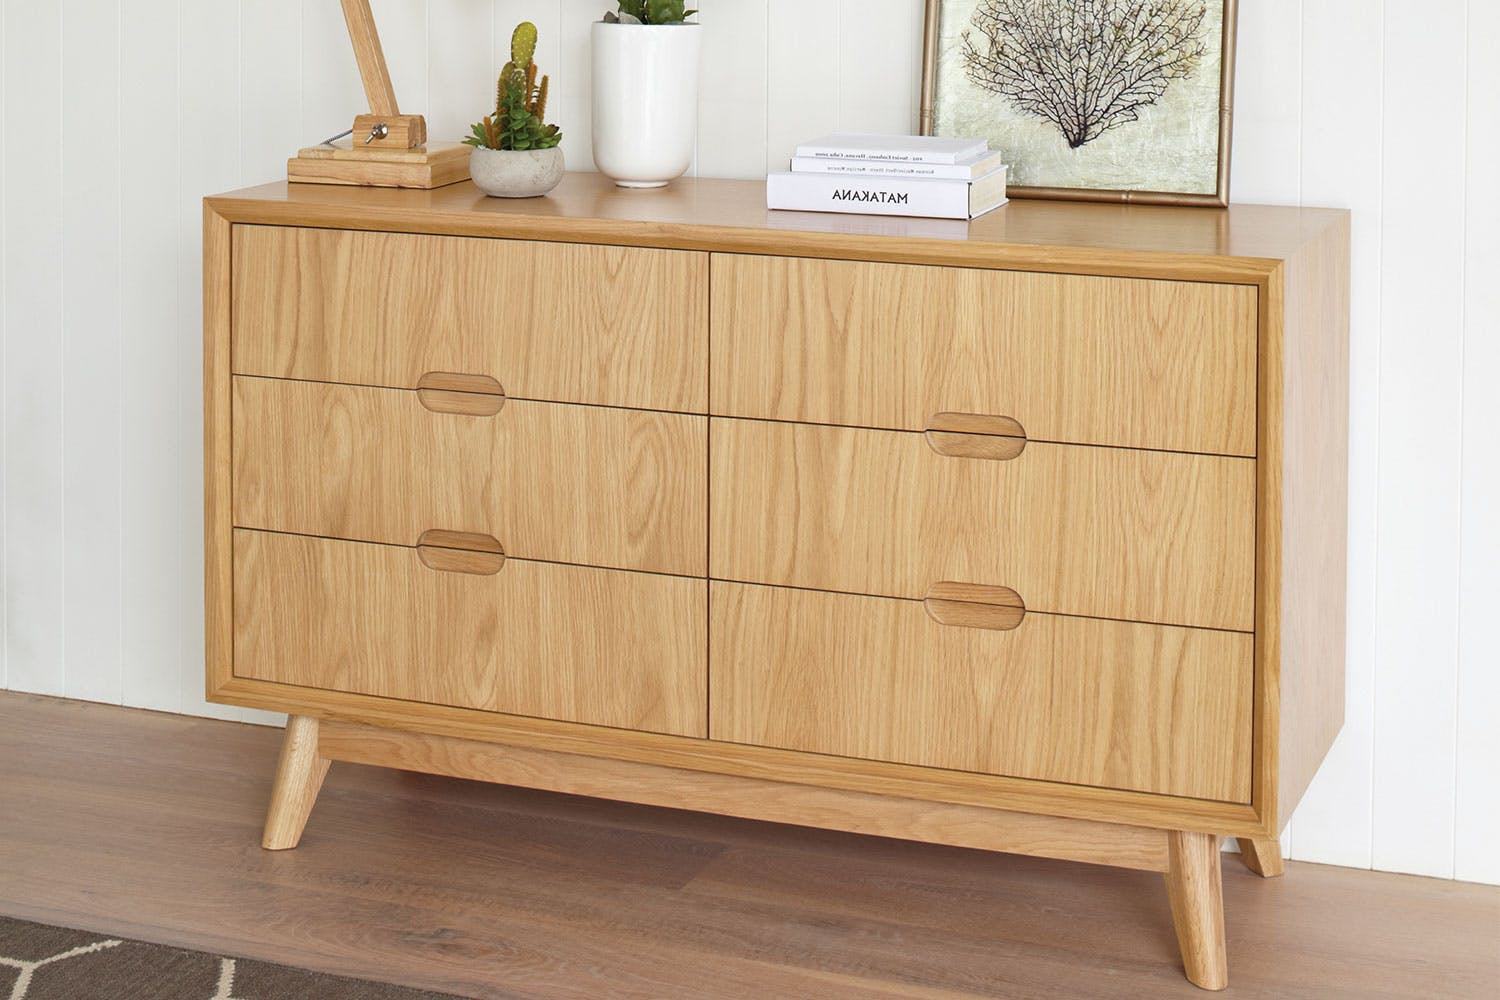 design sold product townhouse dresser kent items collection retrocraft lowboy coffey